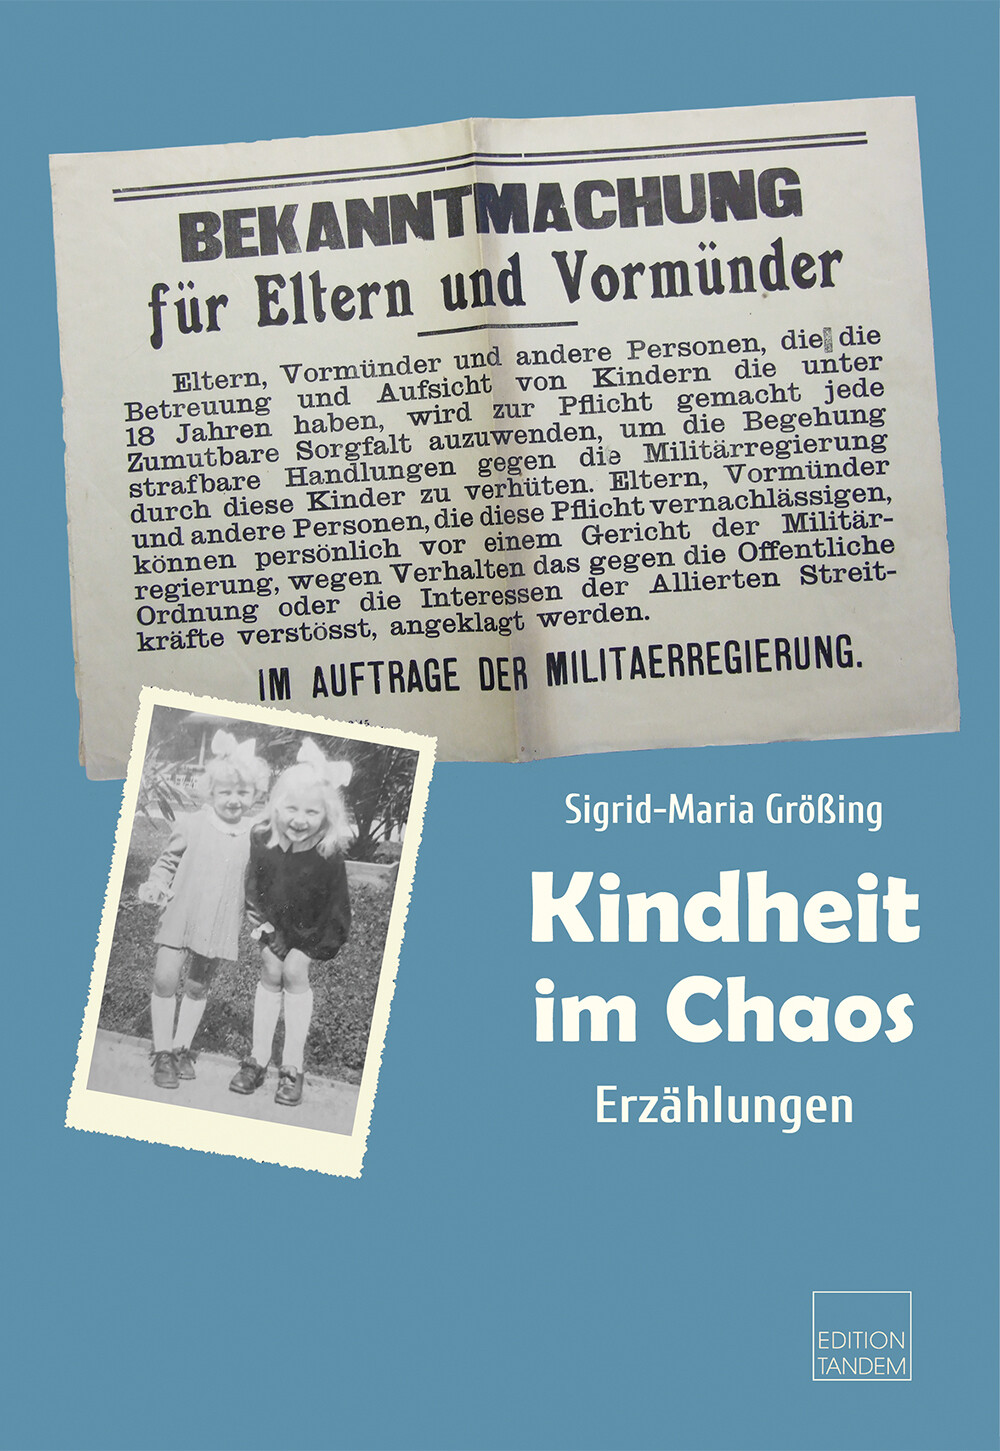 Kindheit im Chaos